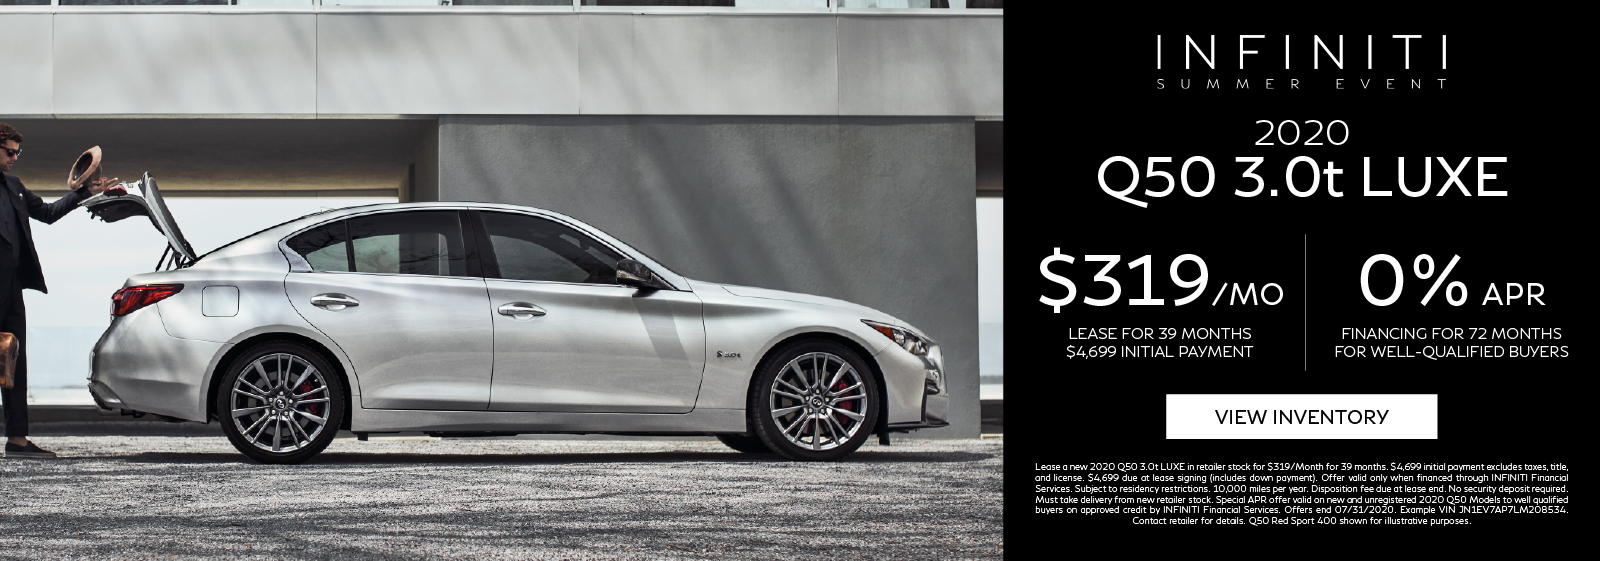 Lease a new 2020 Q50 3.0t LUXE for $319 per month for 39 months. Click to view inventory.